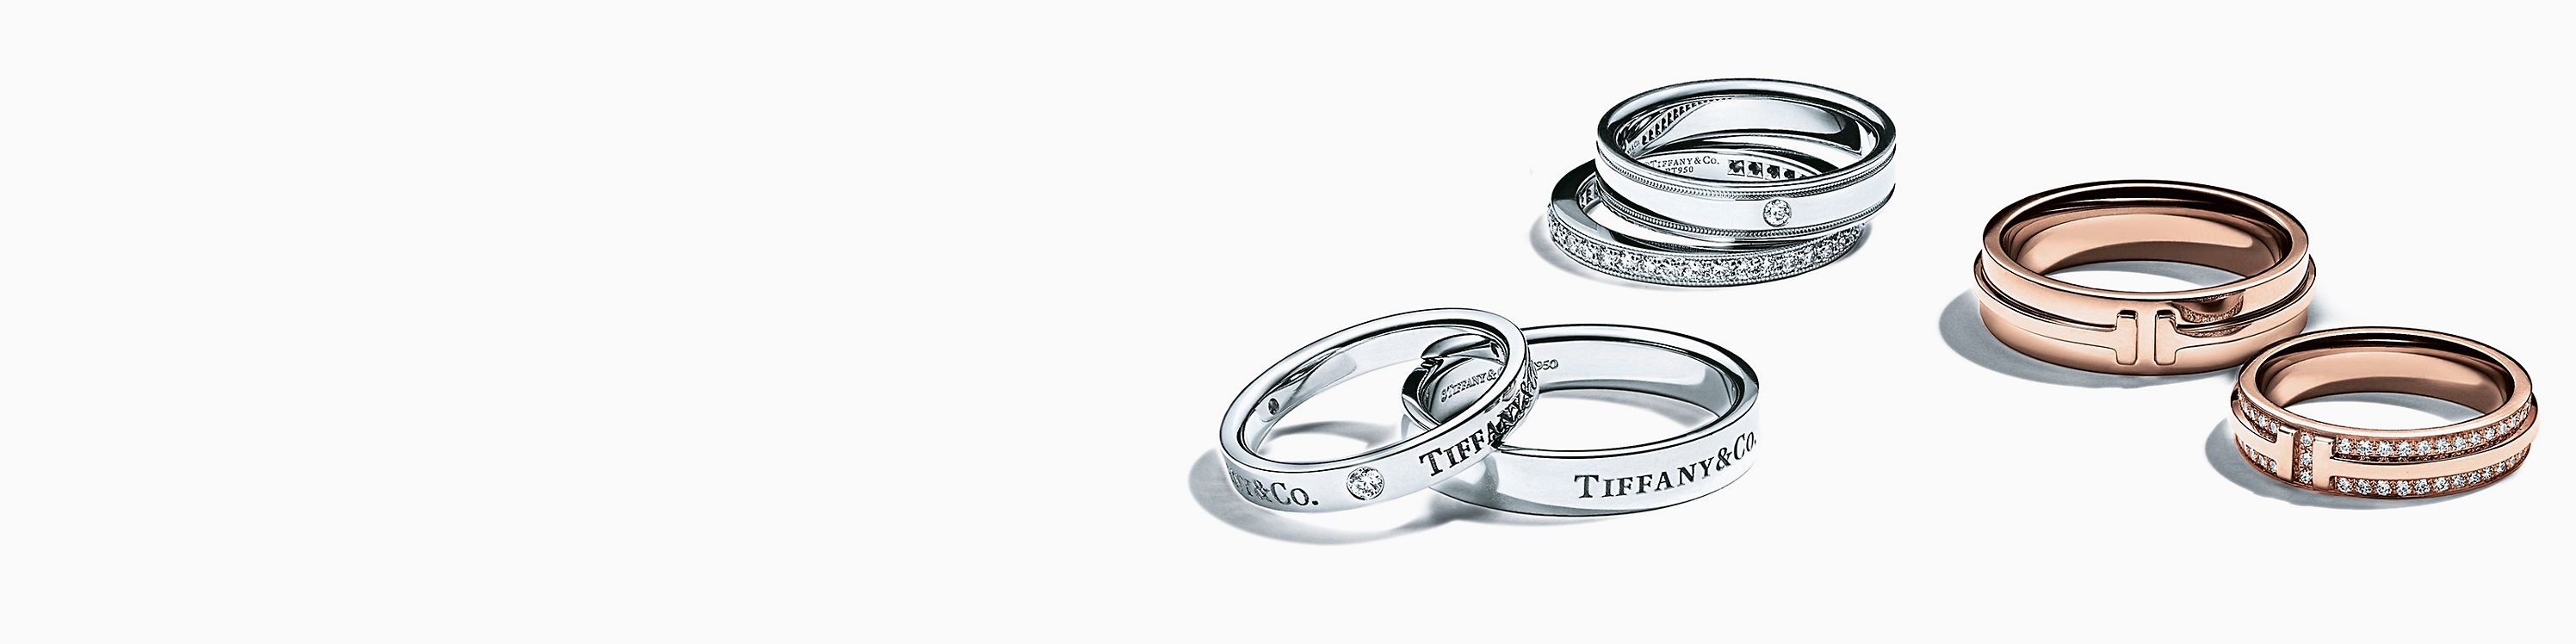 Ver sets de alianzas de boda de Tiffany & Co.